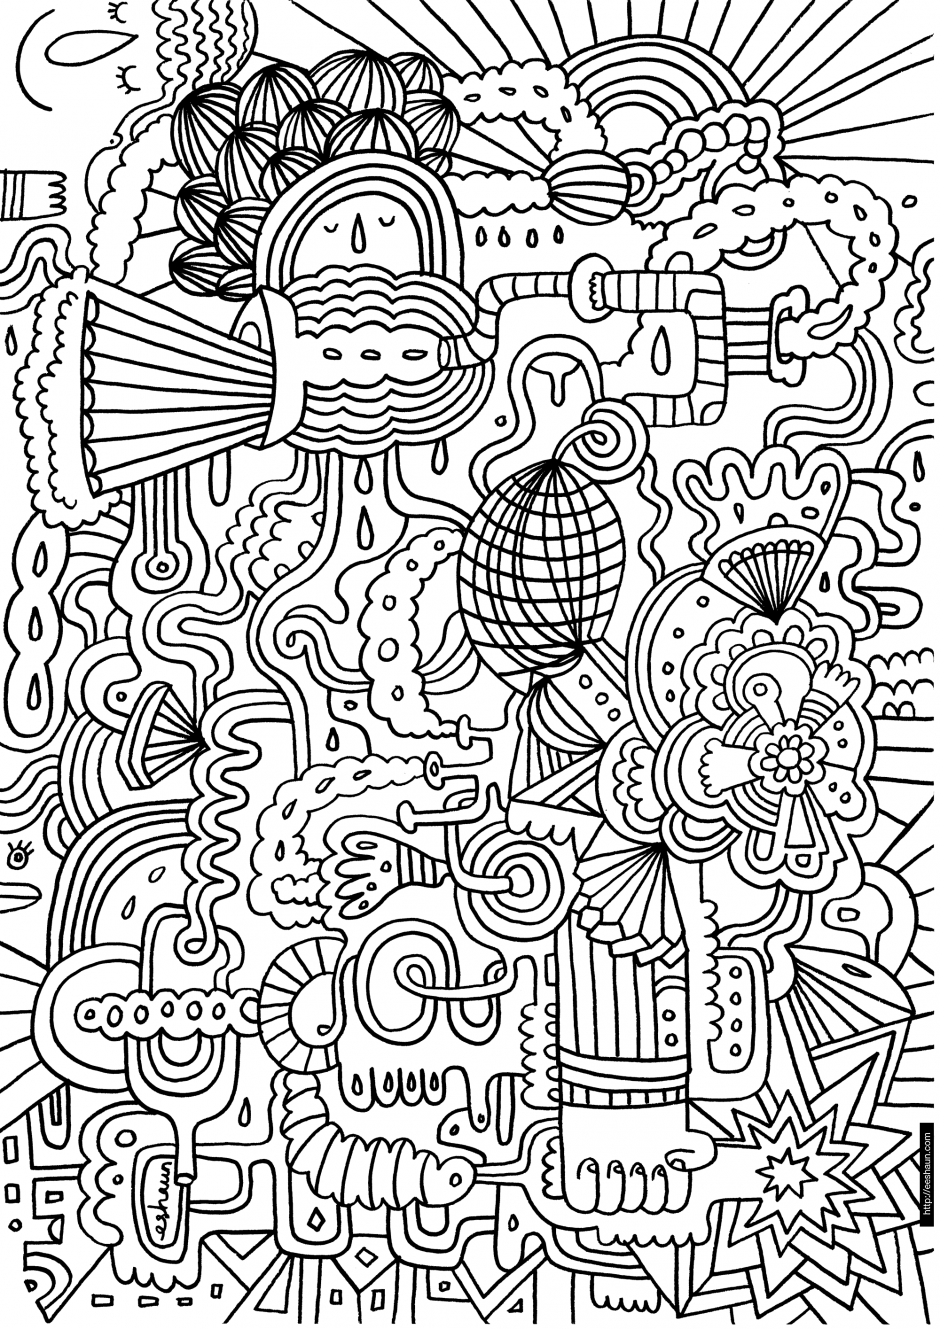 challenging coloring sheets free difficult coloring pages for adults coloring challenging sheets